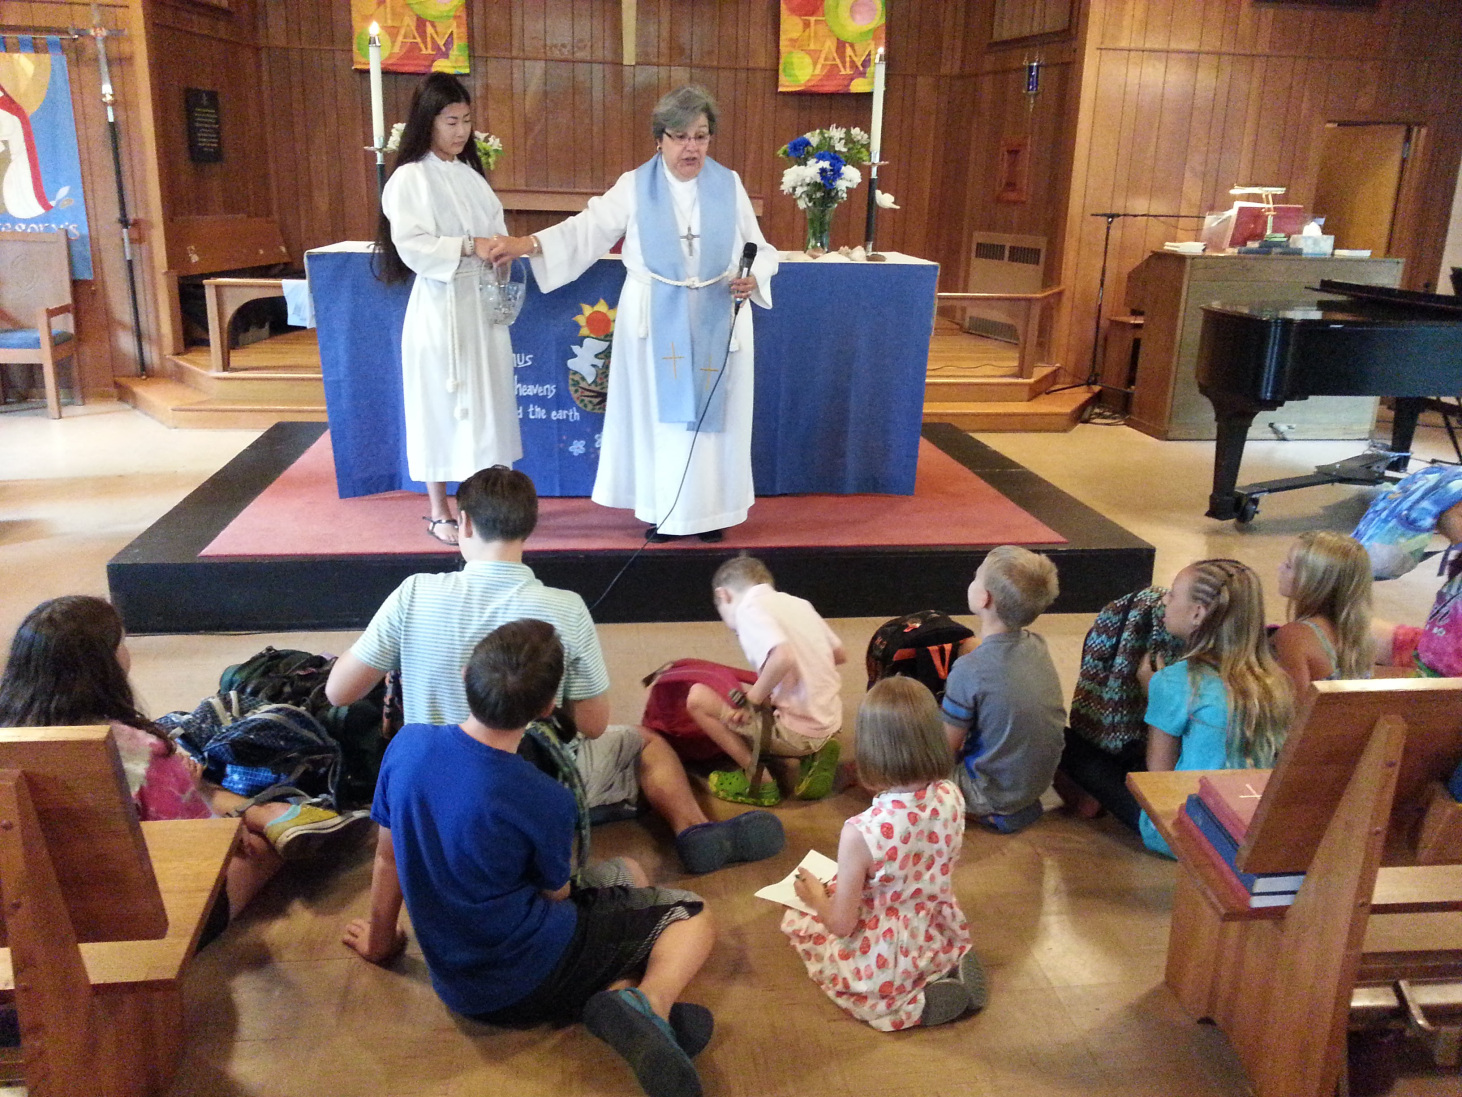 Rev. Susan talking to children